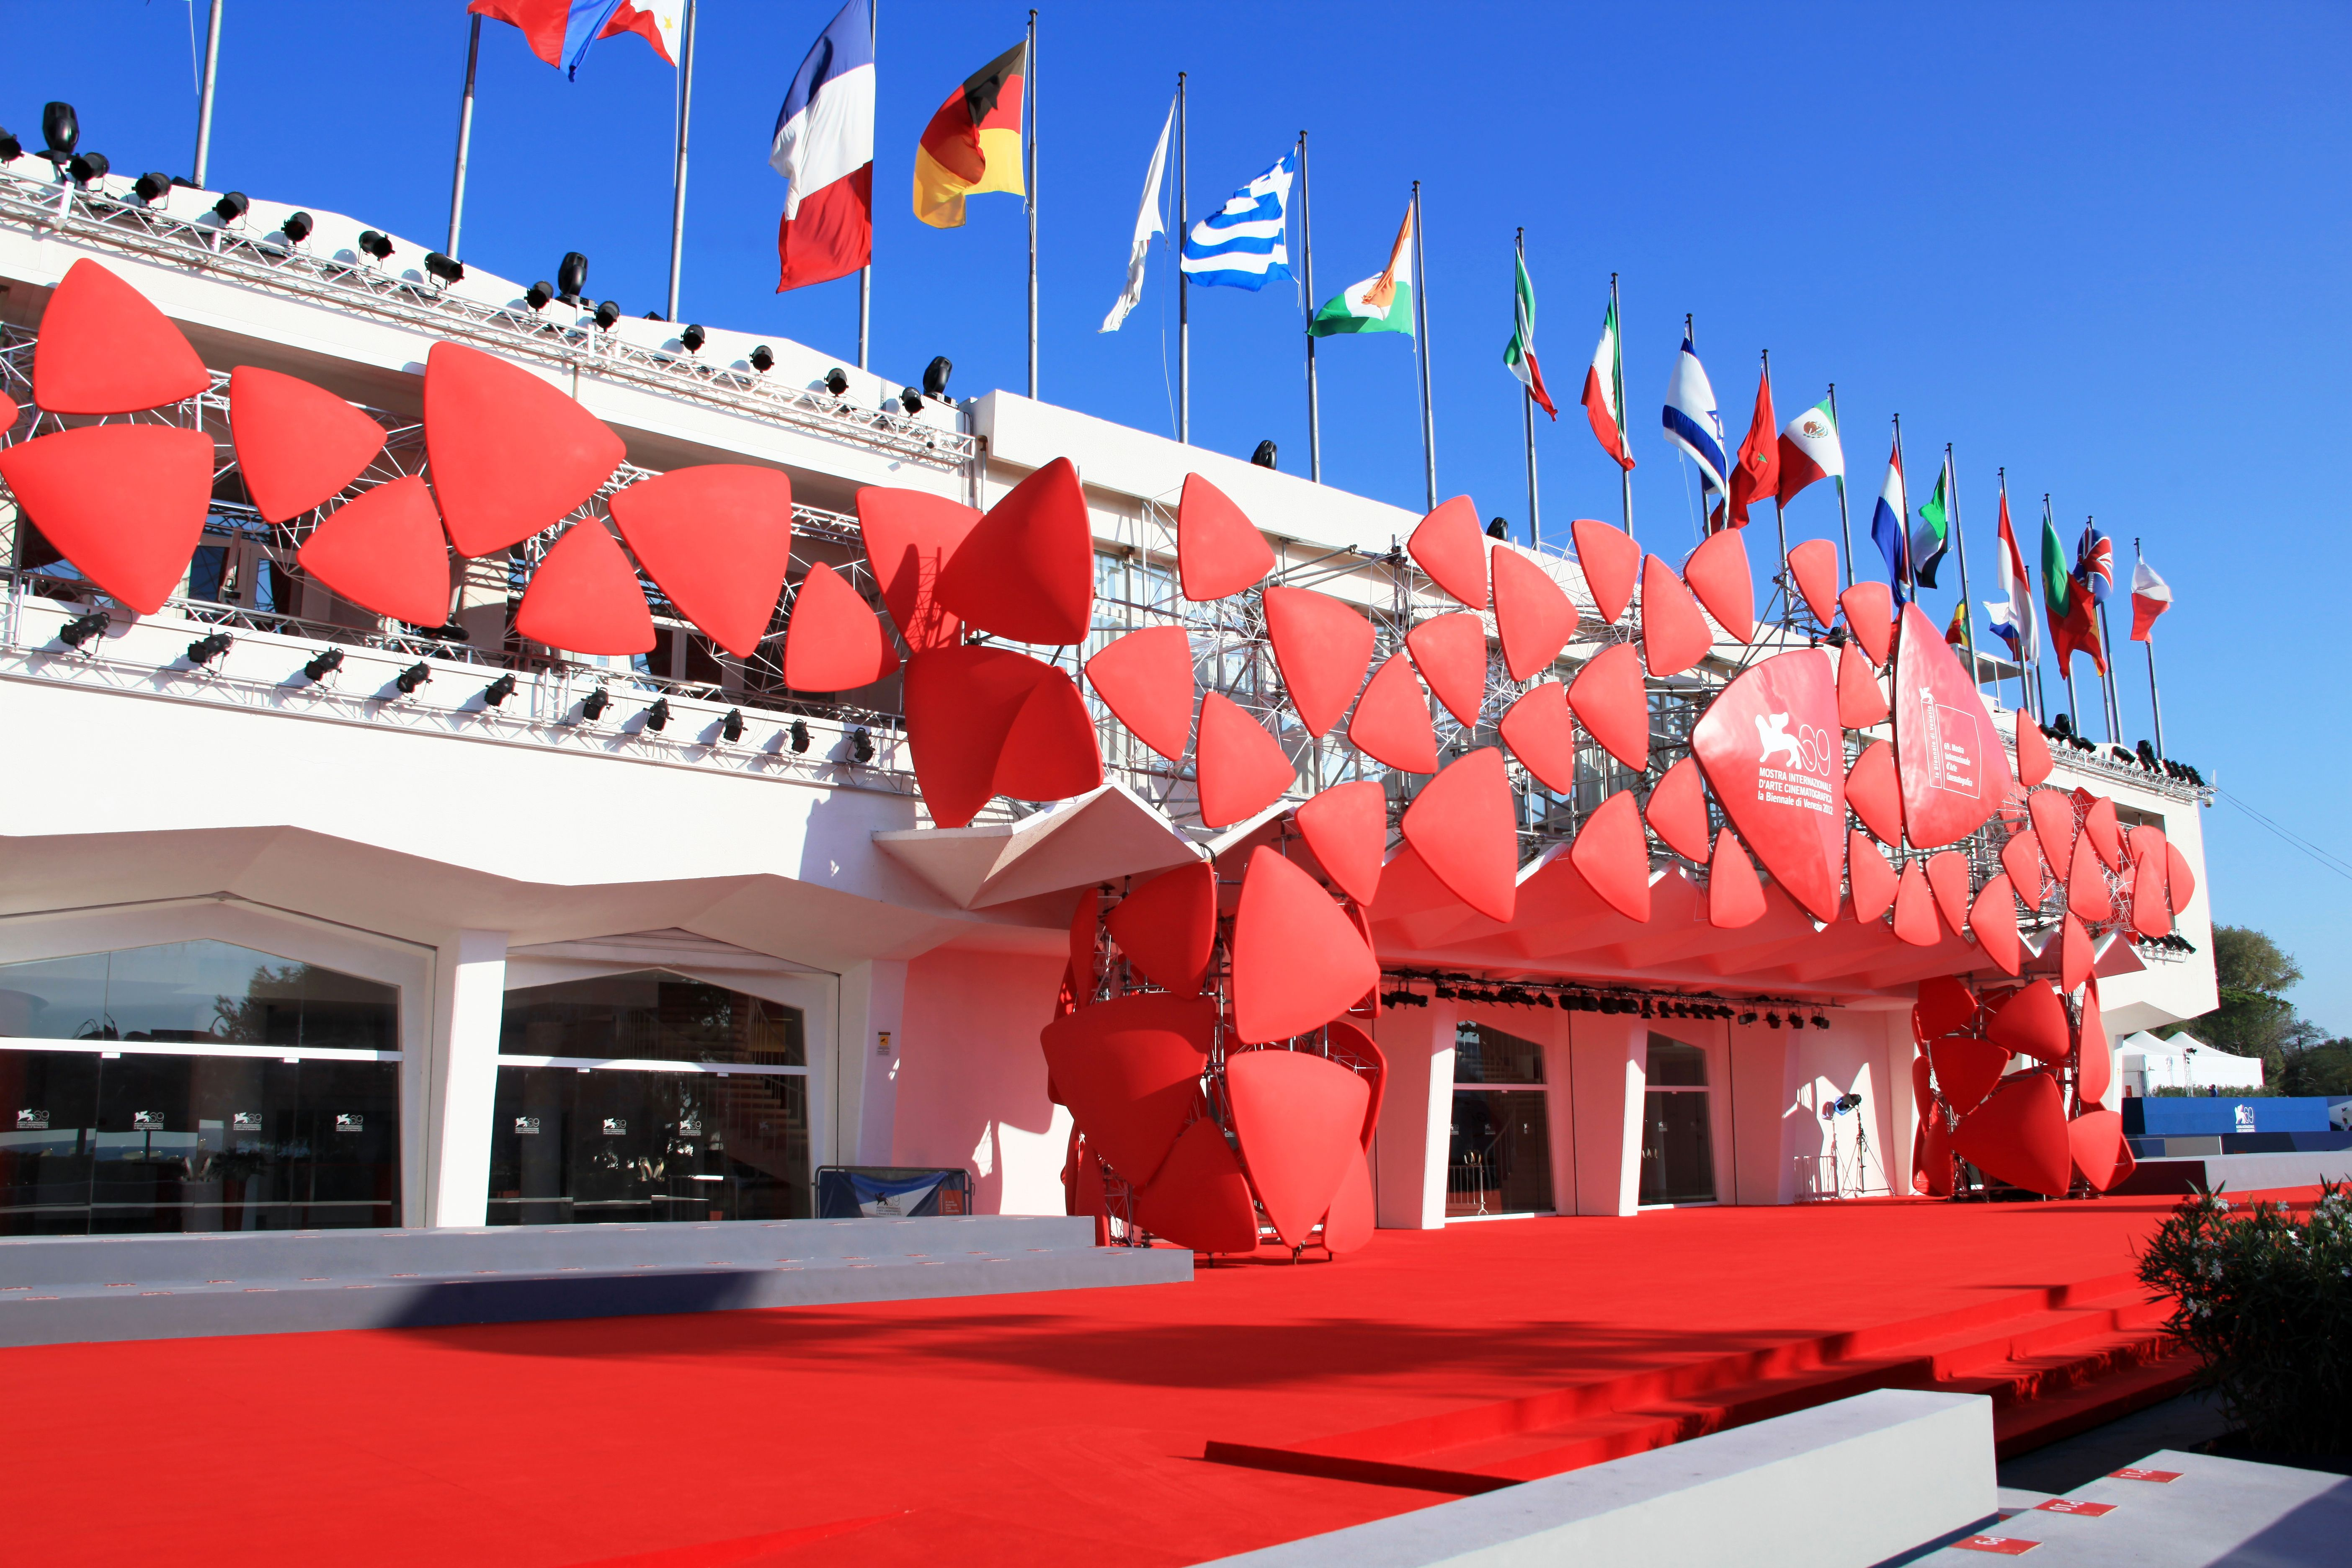 Close-up of the empty Red Carpet area at 69th Venice Film Festival in Venice, Italy.